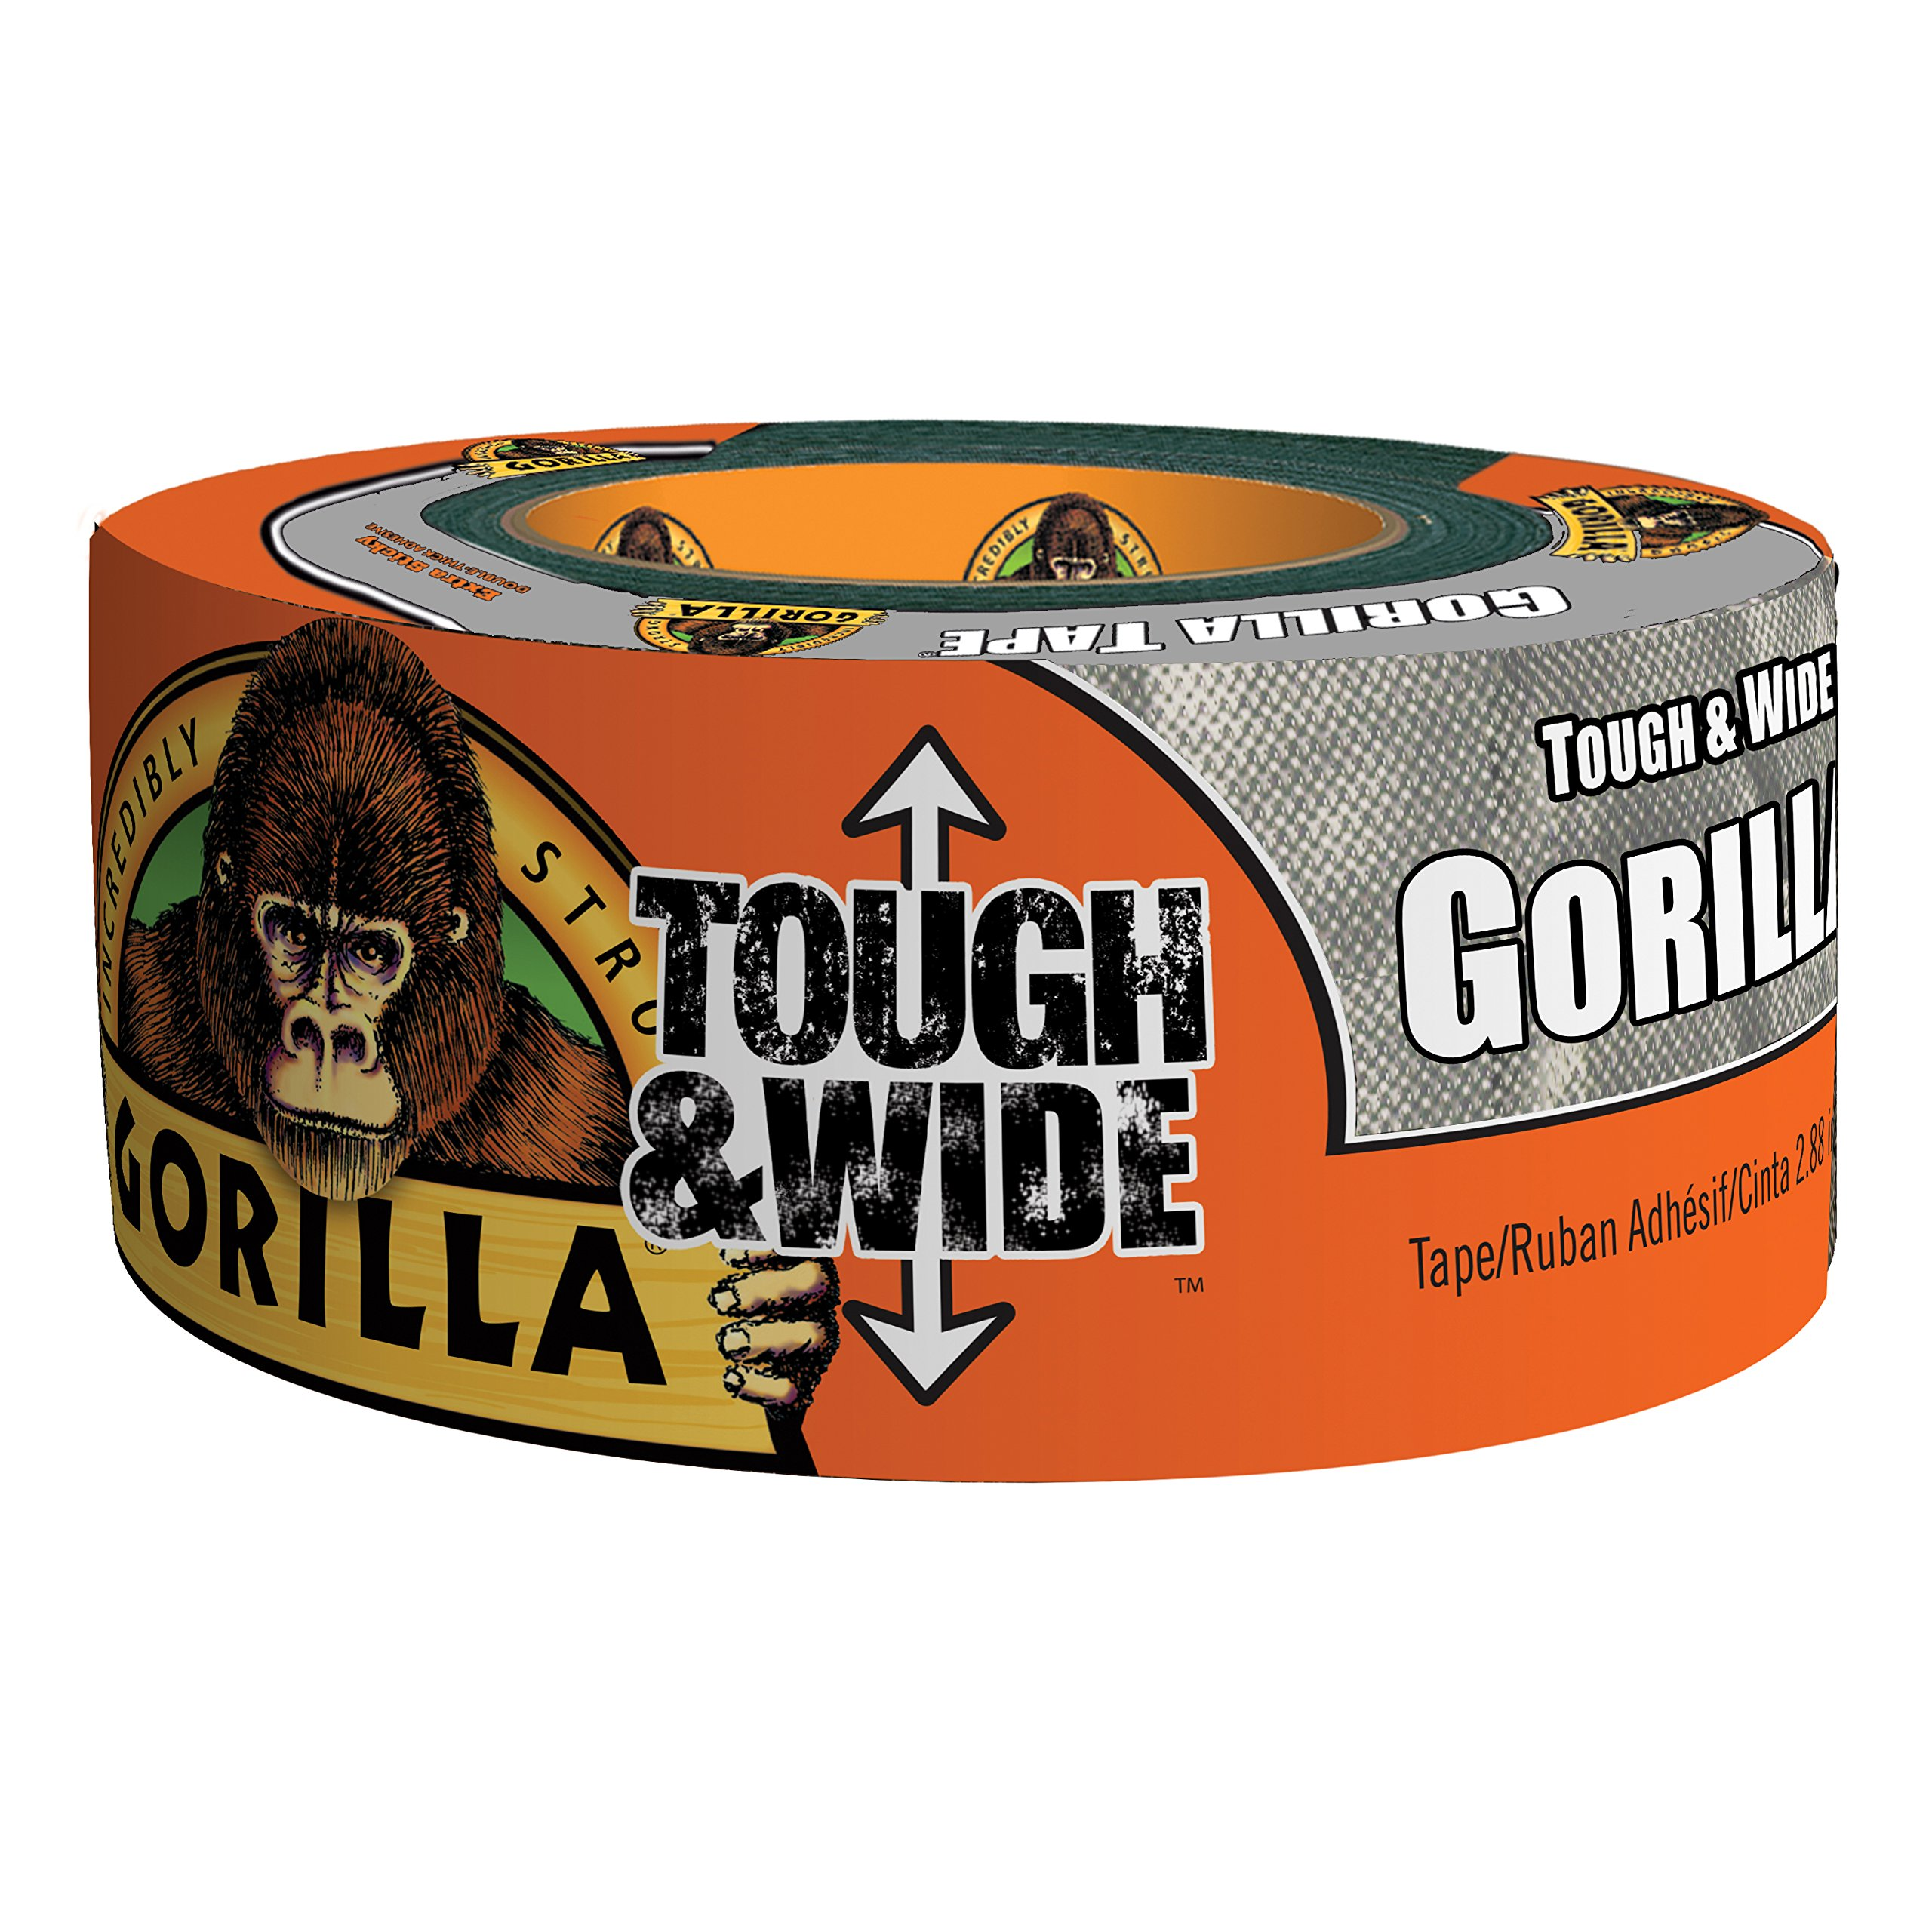 Gorilla 6073502DF Tough & Wide Duct Tape, 4 - Pack, Silver by Gorilla